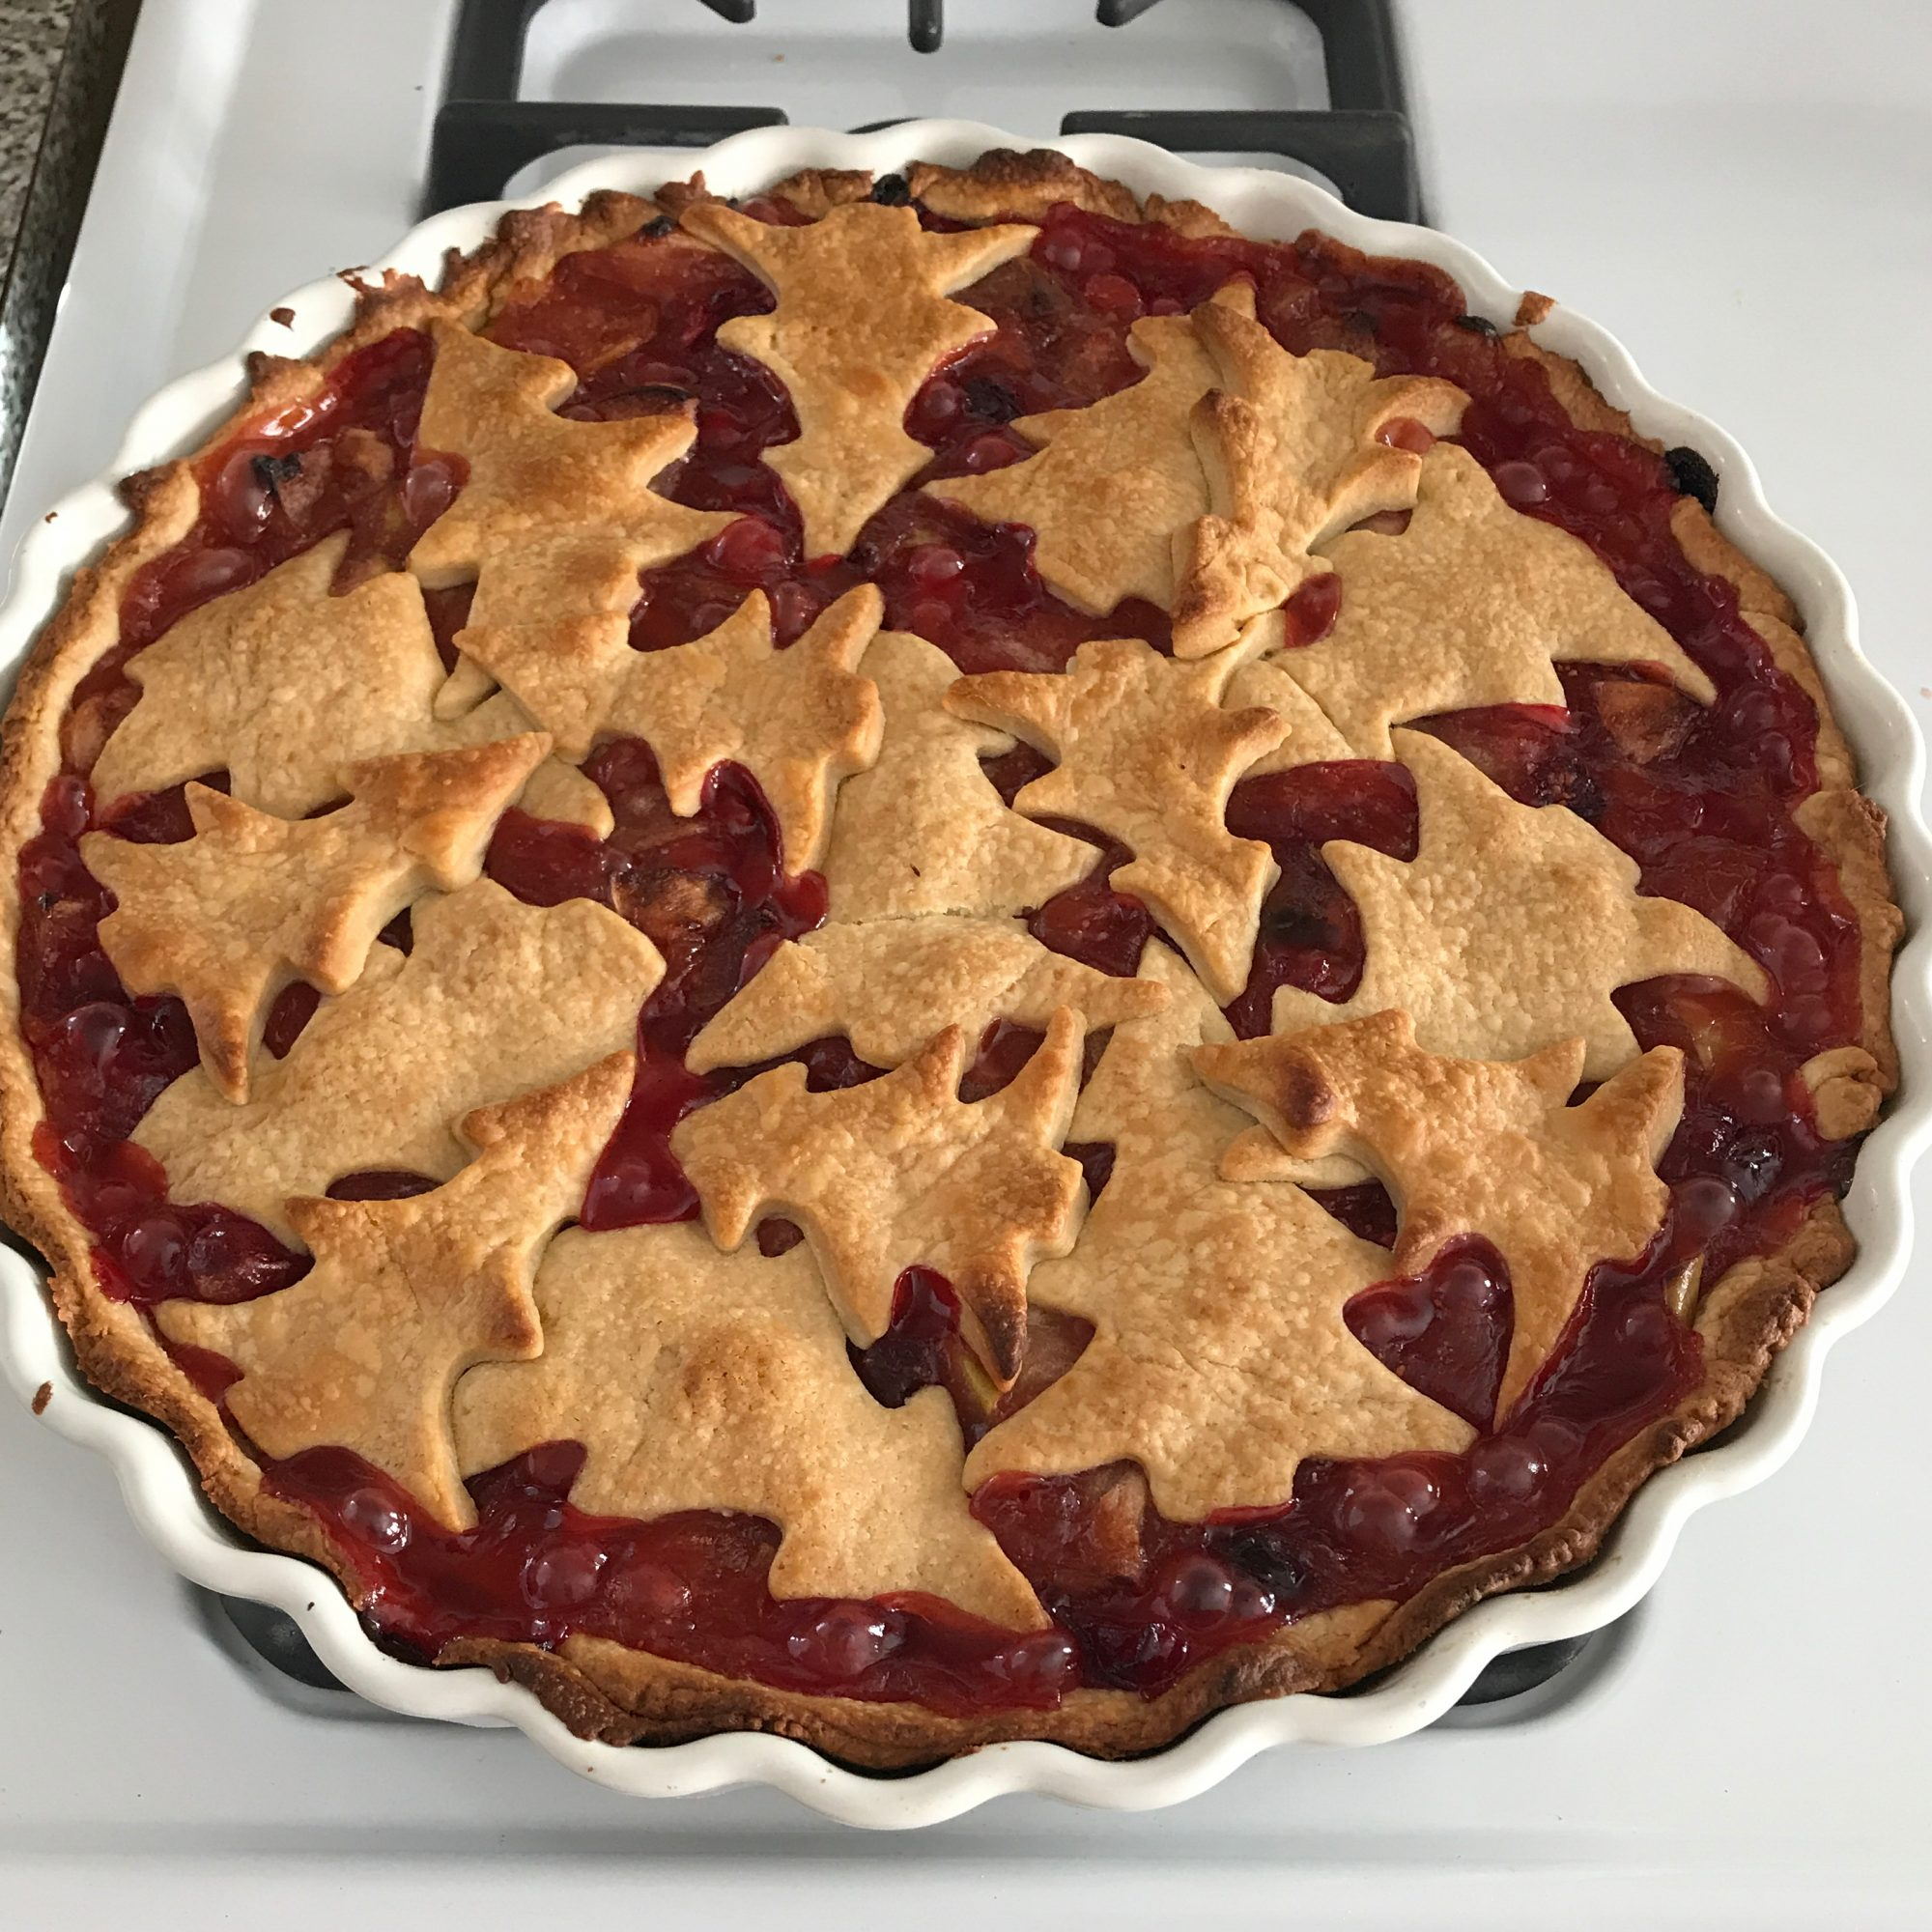 cranberry pie with christmas tree pastry cutouts on top